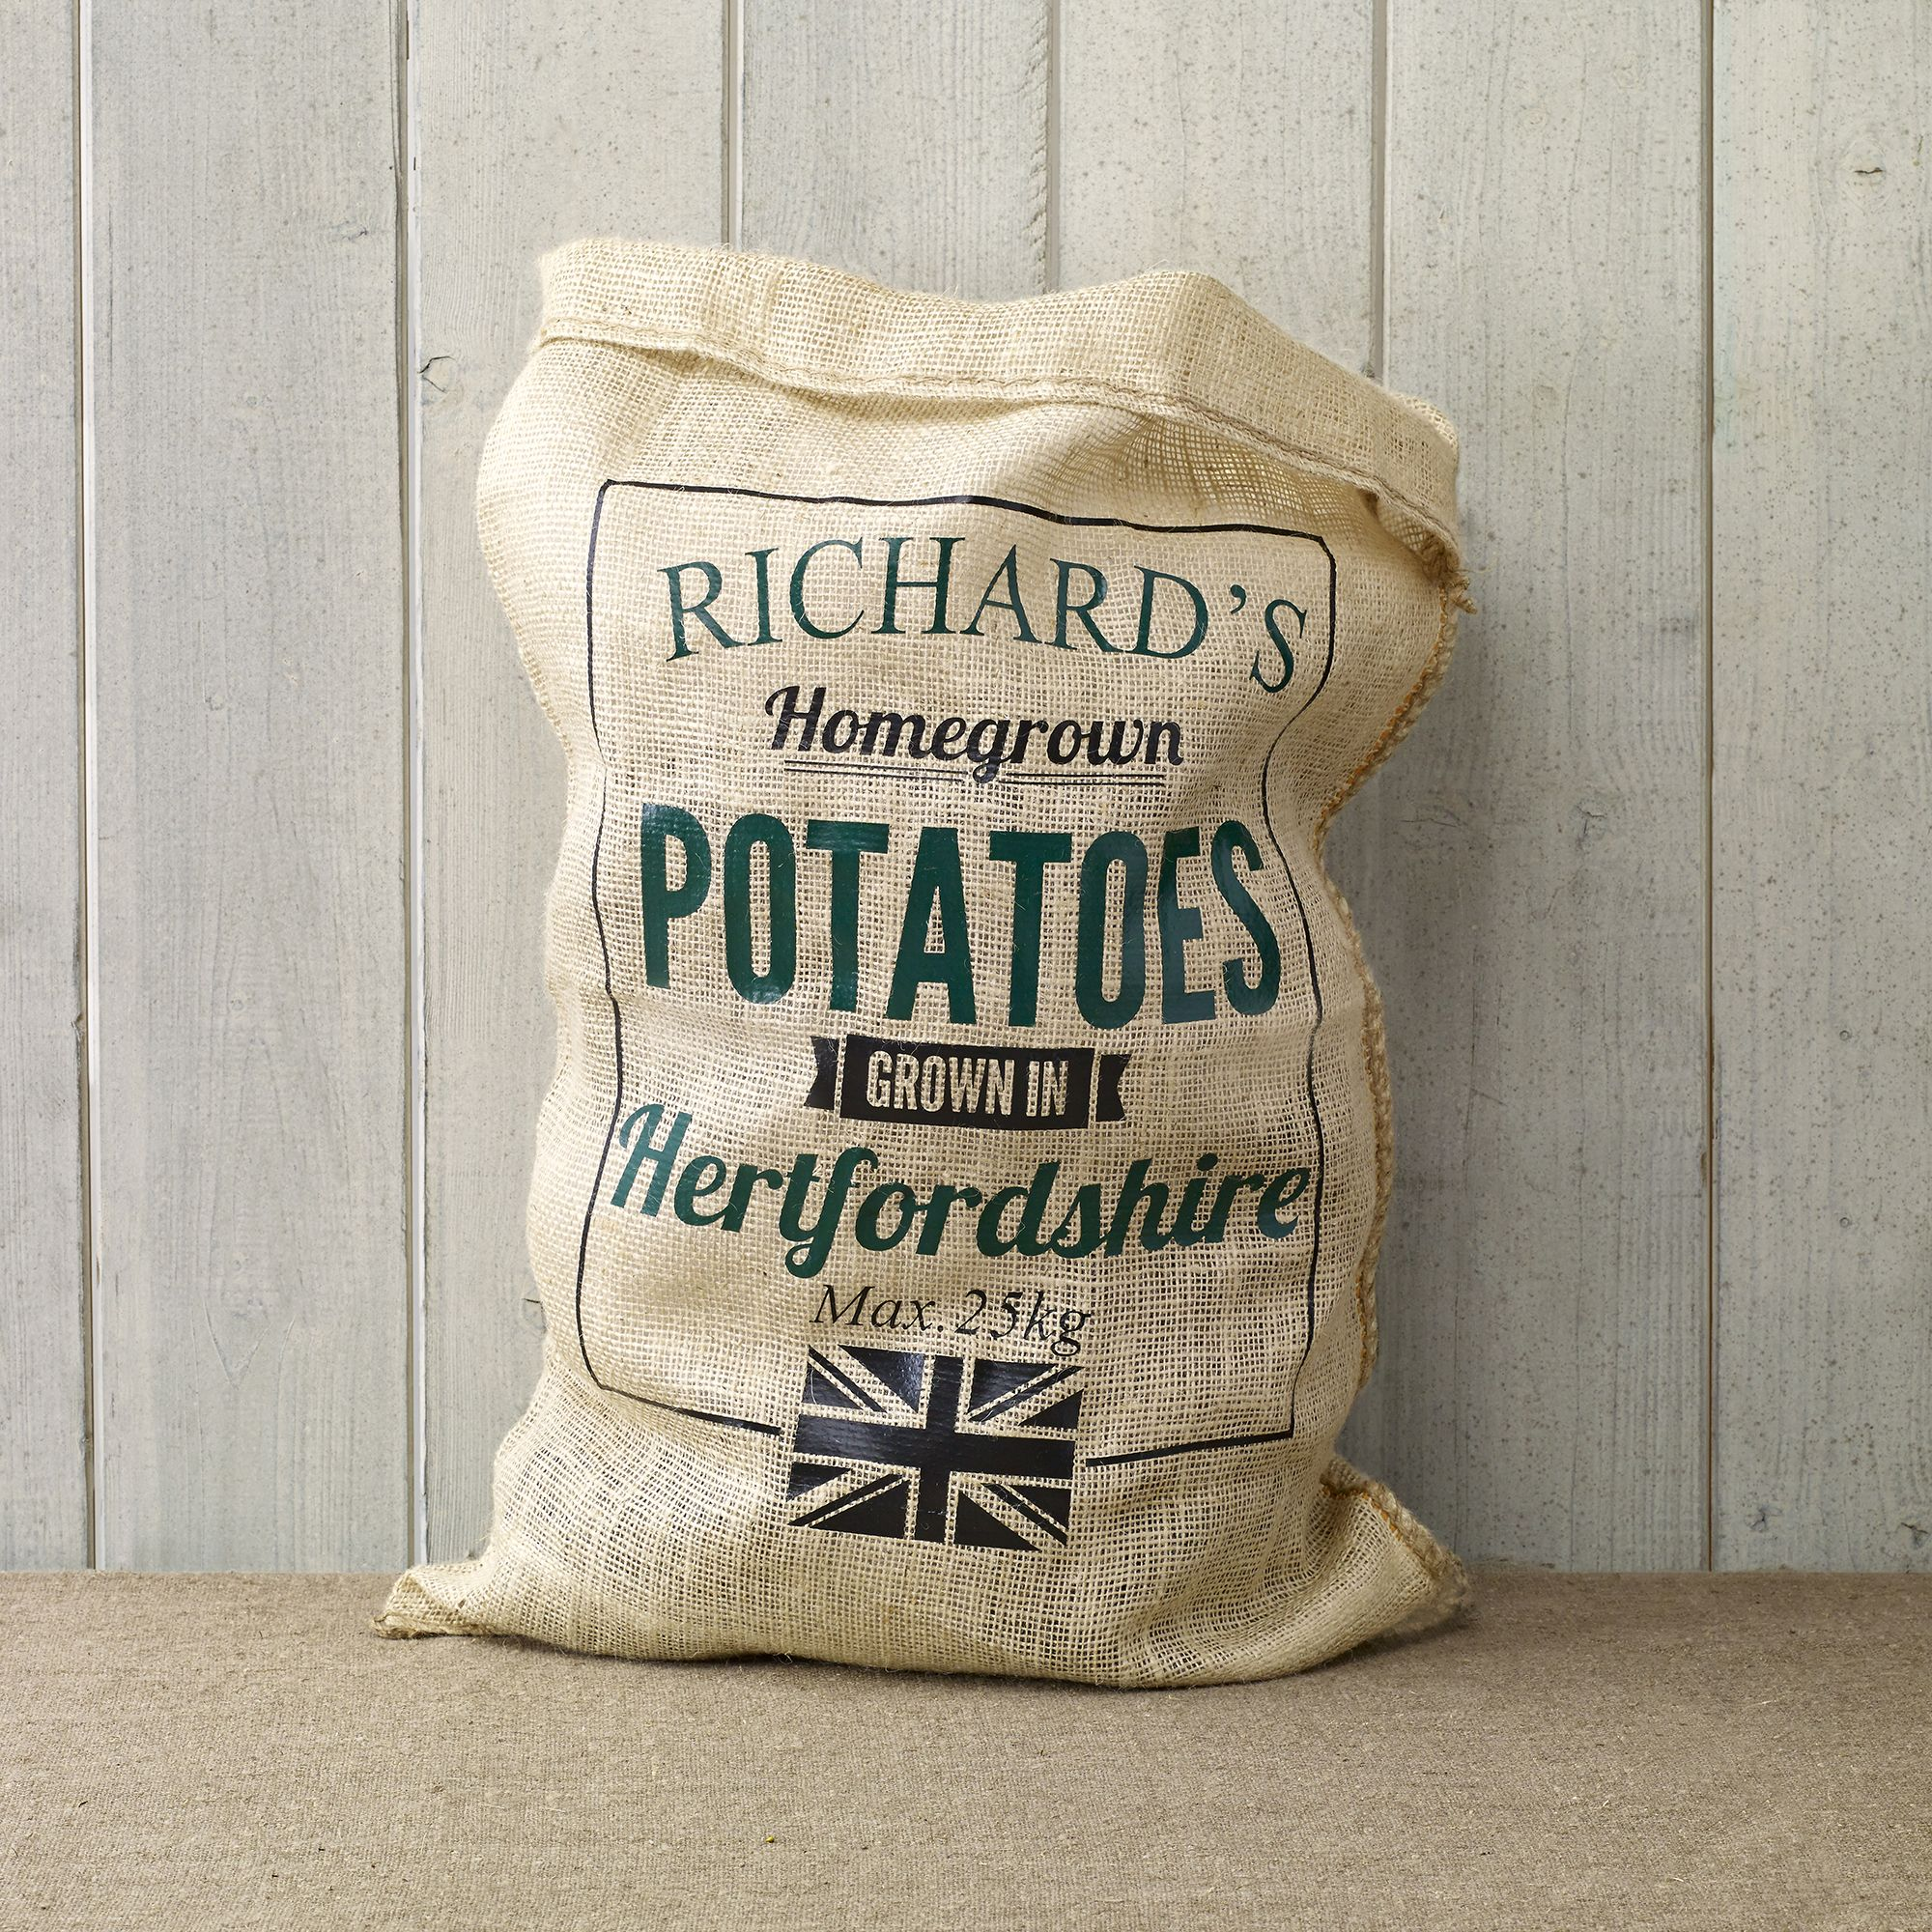 """<p>What to choose for your green-fingered friend who has everything? Personalise this hessian vegetable sack with a name, vegetable and location to take their gardening pastime to an impressive level of gravitas. </p><p>Choose from two designs. </p><p><strong data-redactor-tag=""""strong"""">Personalised Hessian Vegetable Sack, Able Labels, £15</strong><span class=""""redactor-invisible-space"""" data-verified=""""redactor"""" data-redactor-tag=""""span"""" data-redactor-class=""""redactor-invisible-space""""><strong data-redactor-tag=""""strong"""">. </strong><a rel=""""noskim"""" href=""""http://www.notonthehighstreet.com/ablelabels/product/personalised-hessian-vegetable-sack?utm_source=Country_Living&utm_medium=partnership&utm_content=Web&utm_campaign=Giftlikeaneditor"""" target=""""_blank""""><strong data-redactor-tag=""""strong"""">Order here.</strong></a></span><br></p>"""